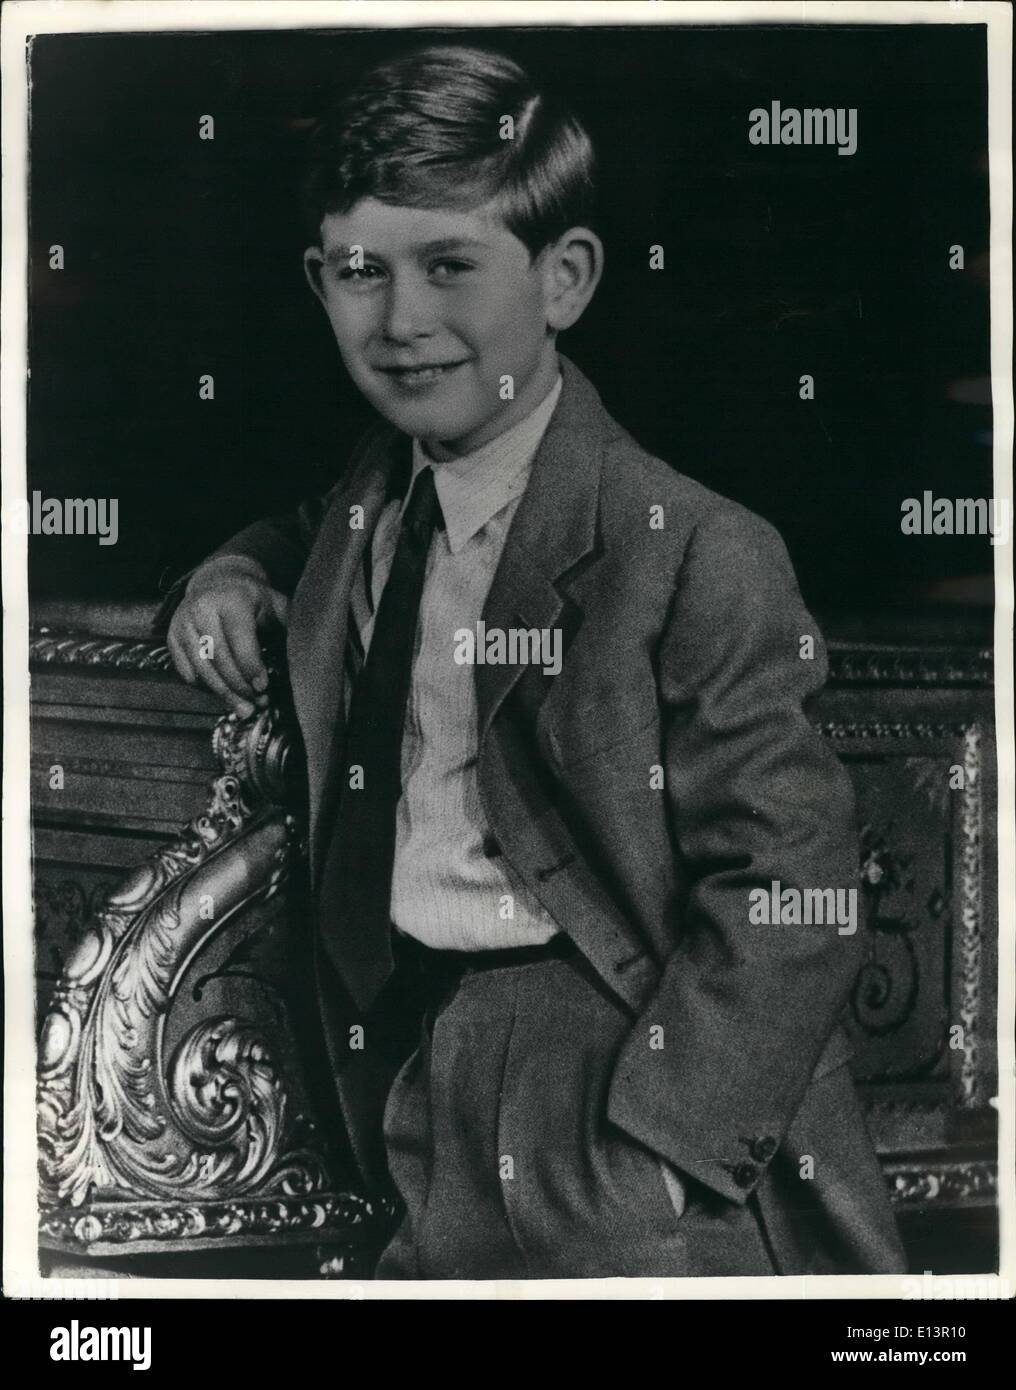 Mar. 22, 2012 - Ninth Birthday of H.R.H. Prince Charles, Duke of Cornwall.: The Prince's ninth birthday is celebrated on the 14th/ November 1957. This pictures was taken in one of the drawing room of Buckingham Palace; Prince Charles is leaning against a grand piano. His Royal Highness is wearing a grey suit with a red tie. Portrait study by Anthony Armstrong Jones; pleas acknowledge. - Stock Image